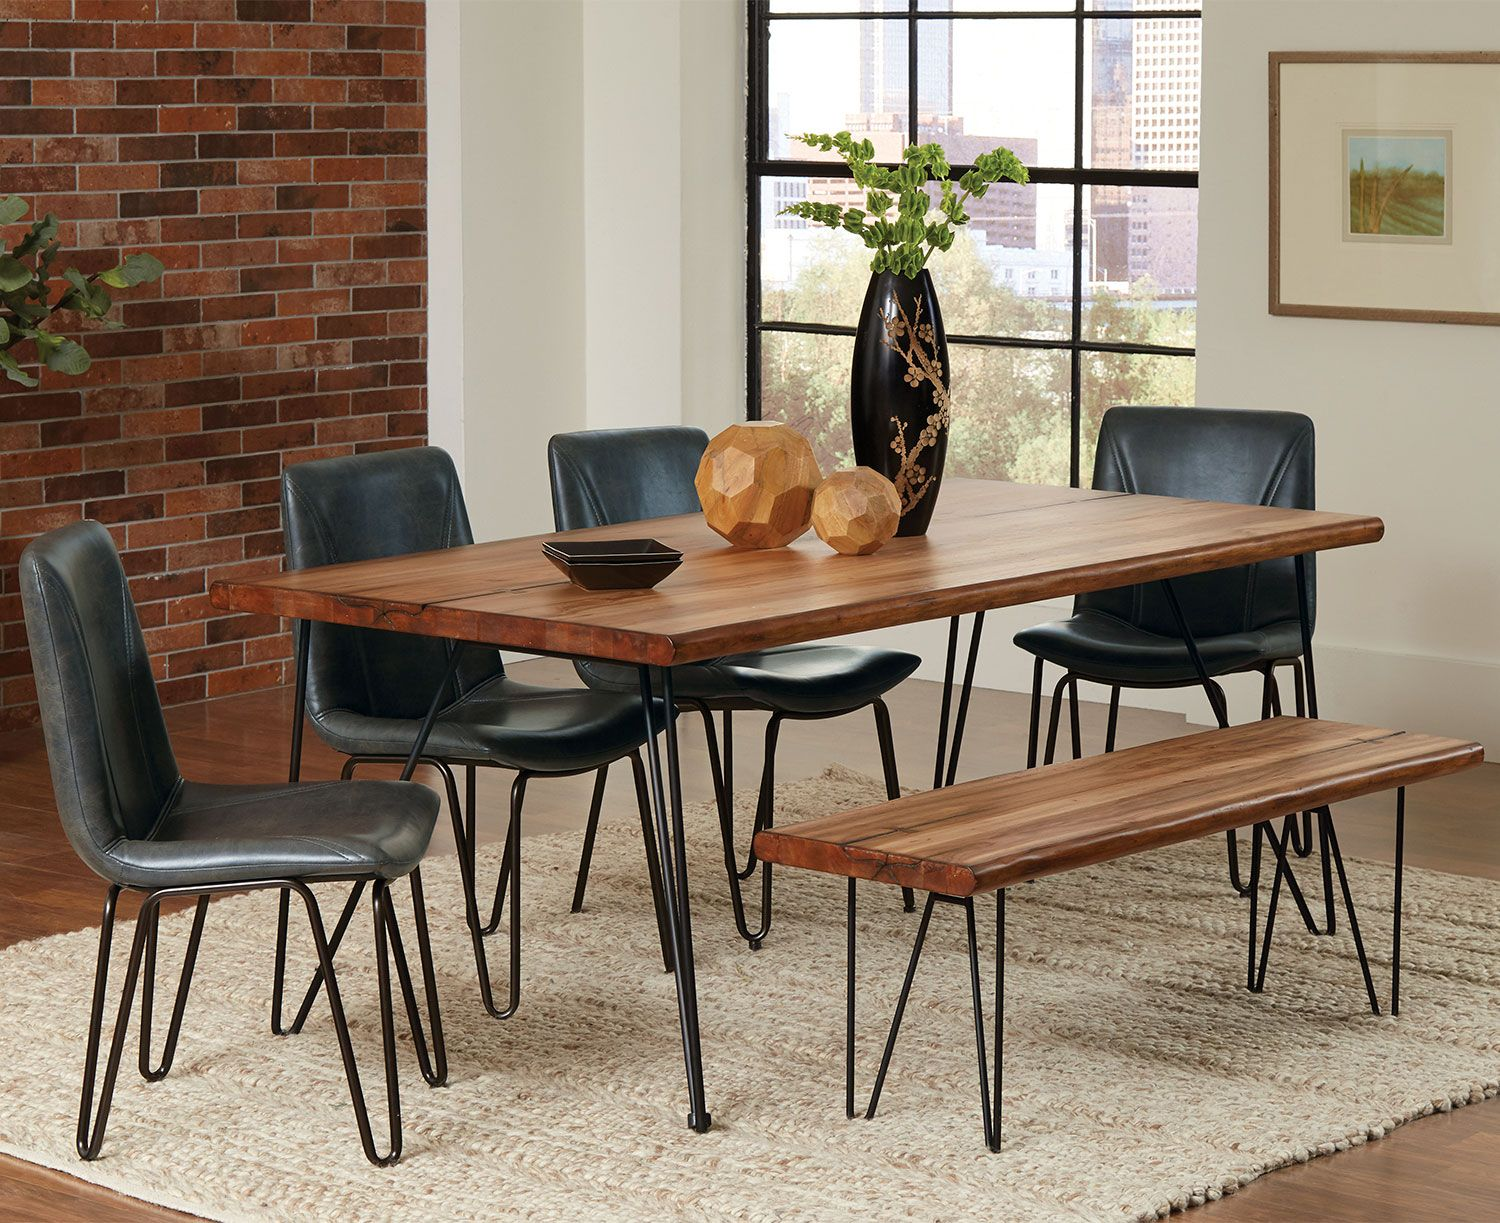 Underson Dining Table Industrial And Modern Farmhouse Style Table